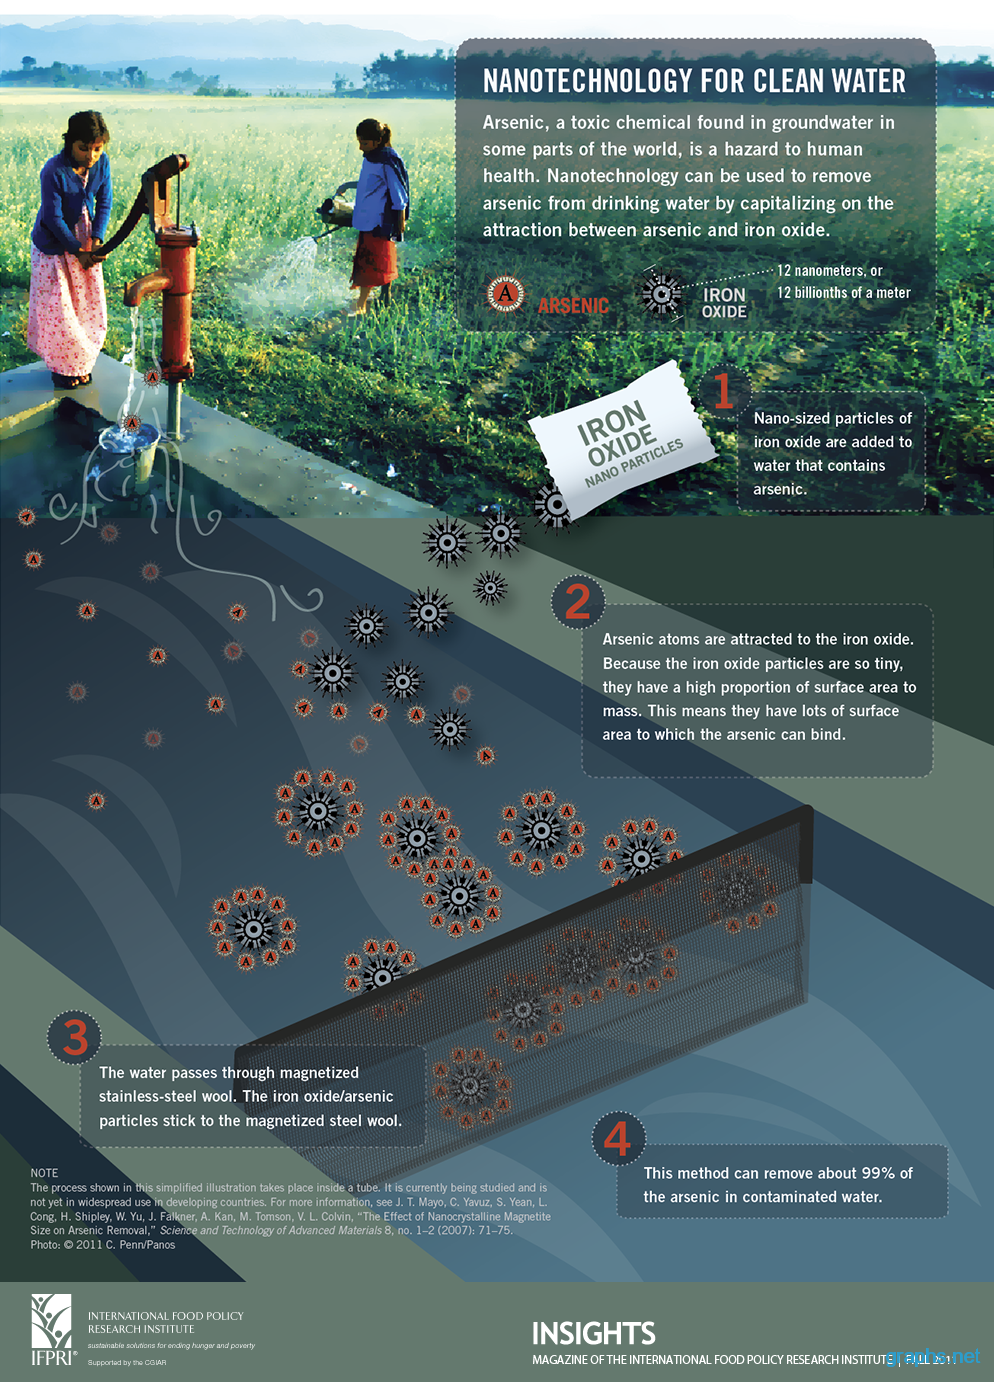 How to Use Nanotechnology for Clean Water?